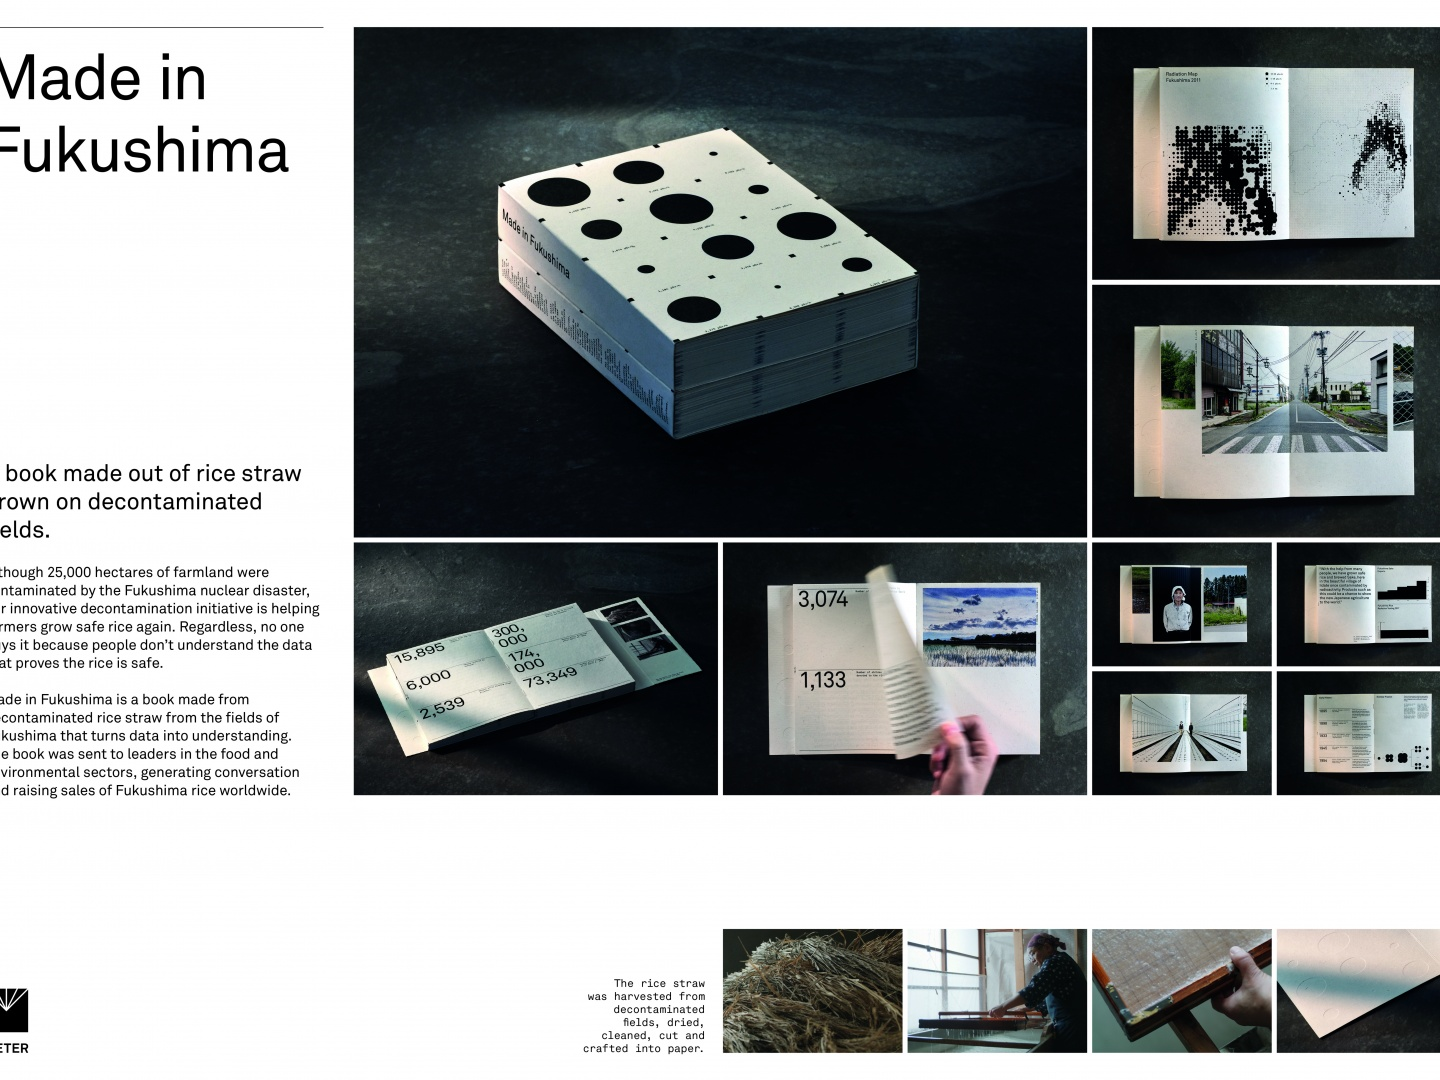 Made in Fukushima. A book made out of rice straw grown on decontaminated farmland. Thumbnail